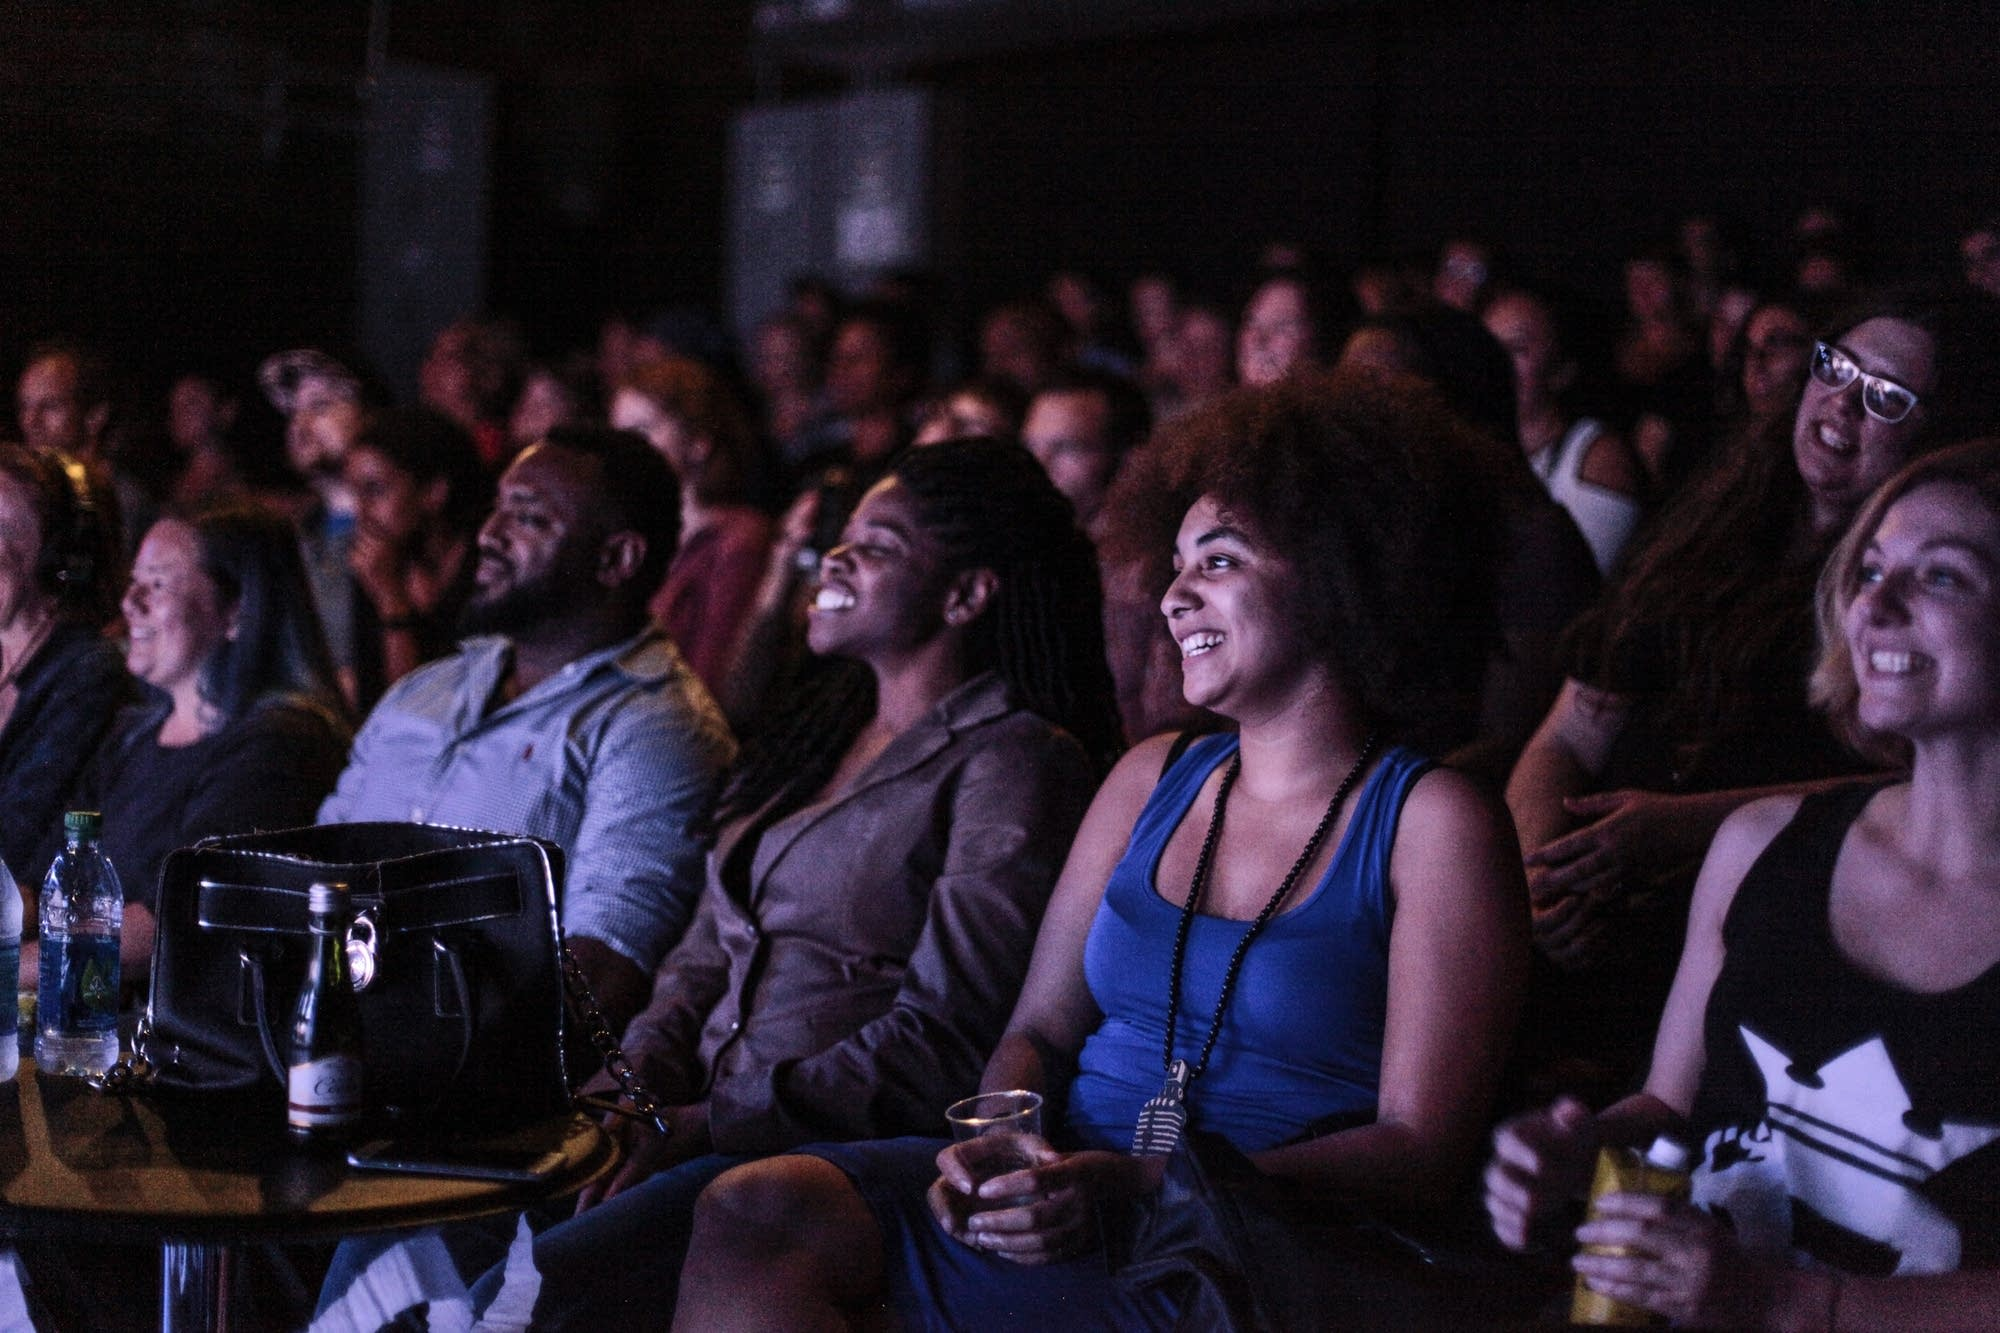 A sold out show brought audiences of different ages, races, and gender.